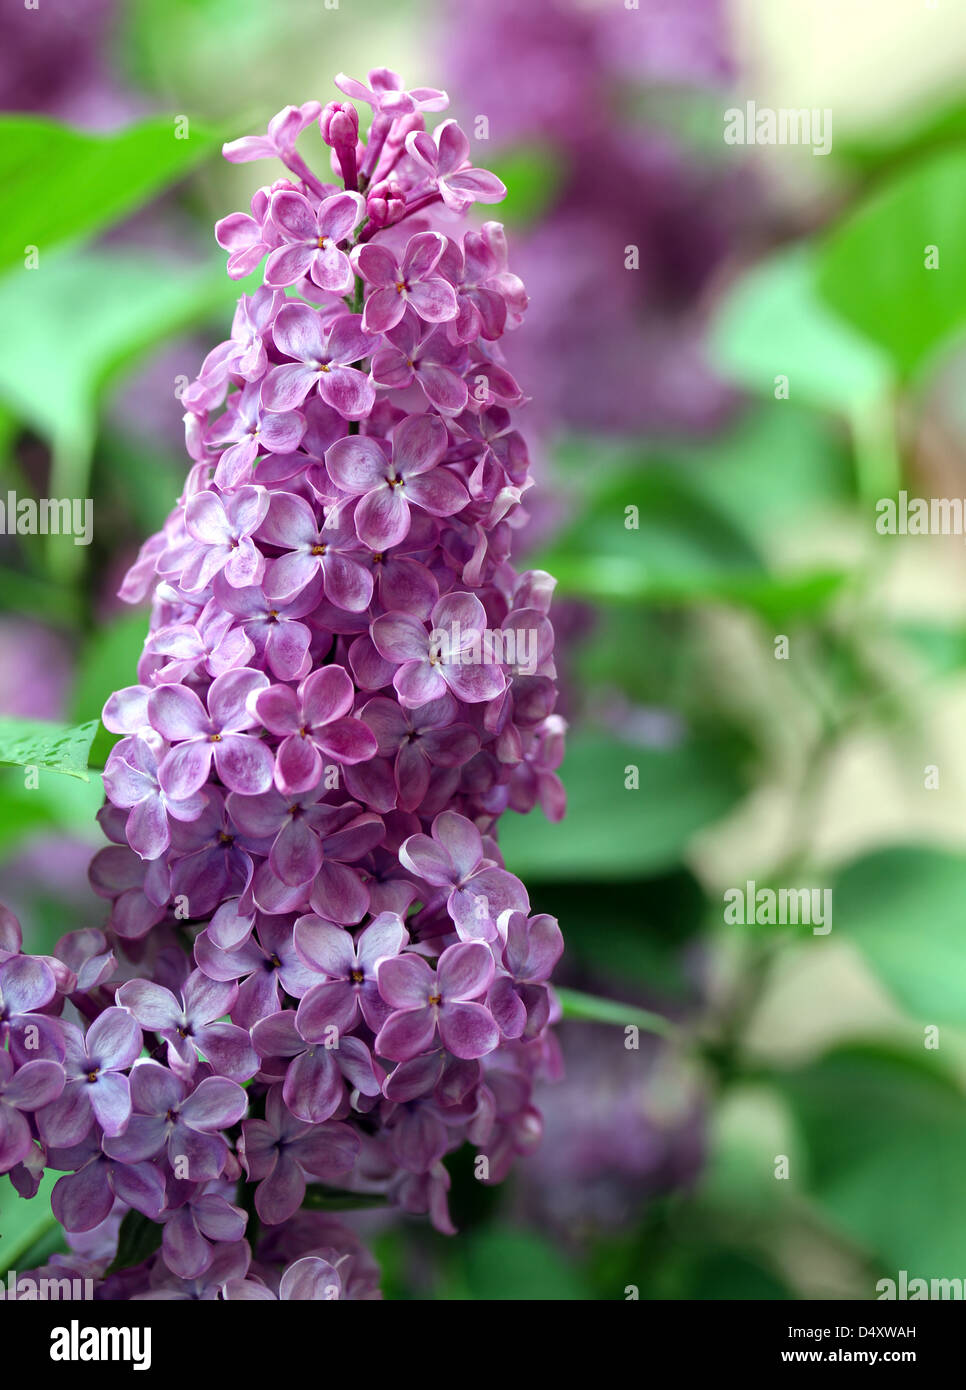 Green branch with spring lilac flowers - Stock Image